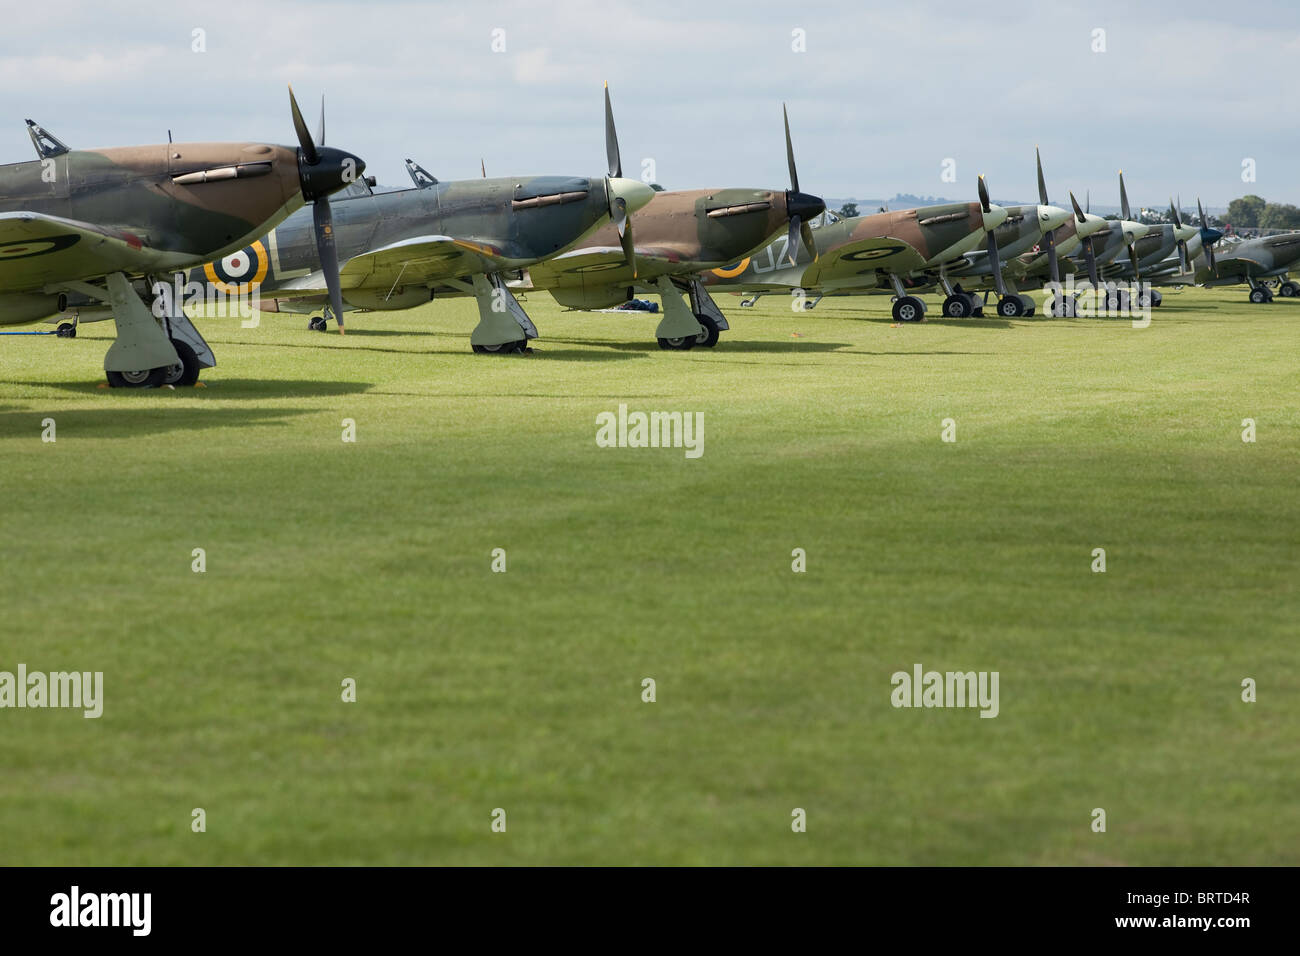 An impressive line up of 3 Hurricanes and 7 Spitfires on the grass in the sunshine - Stock Image